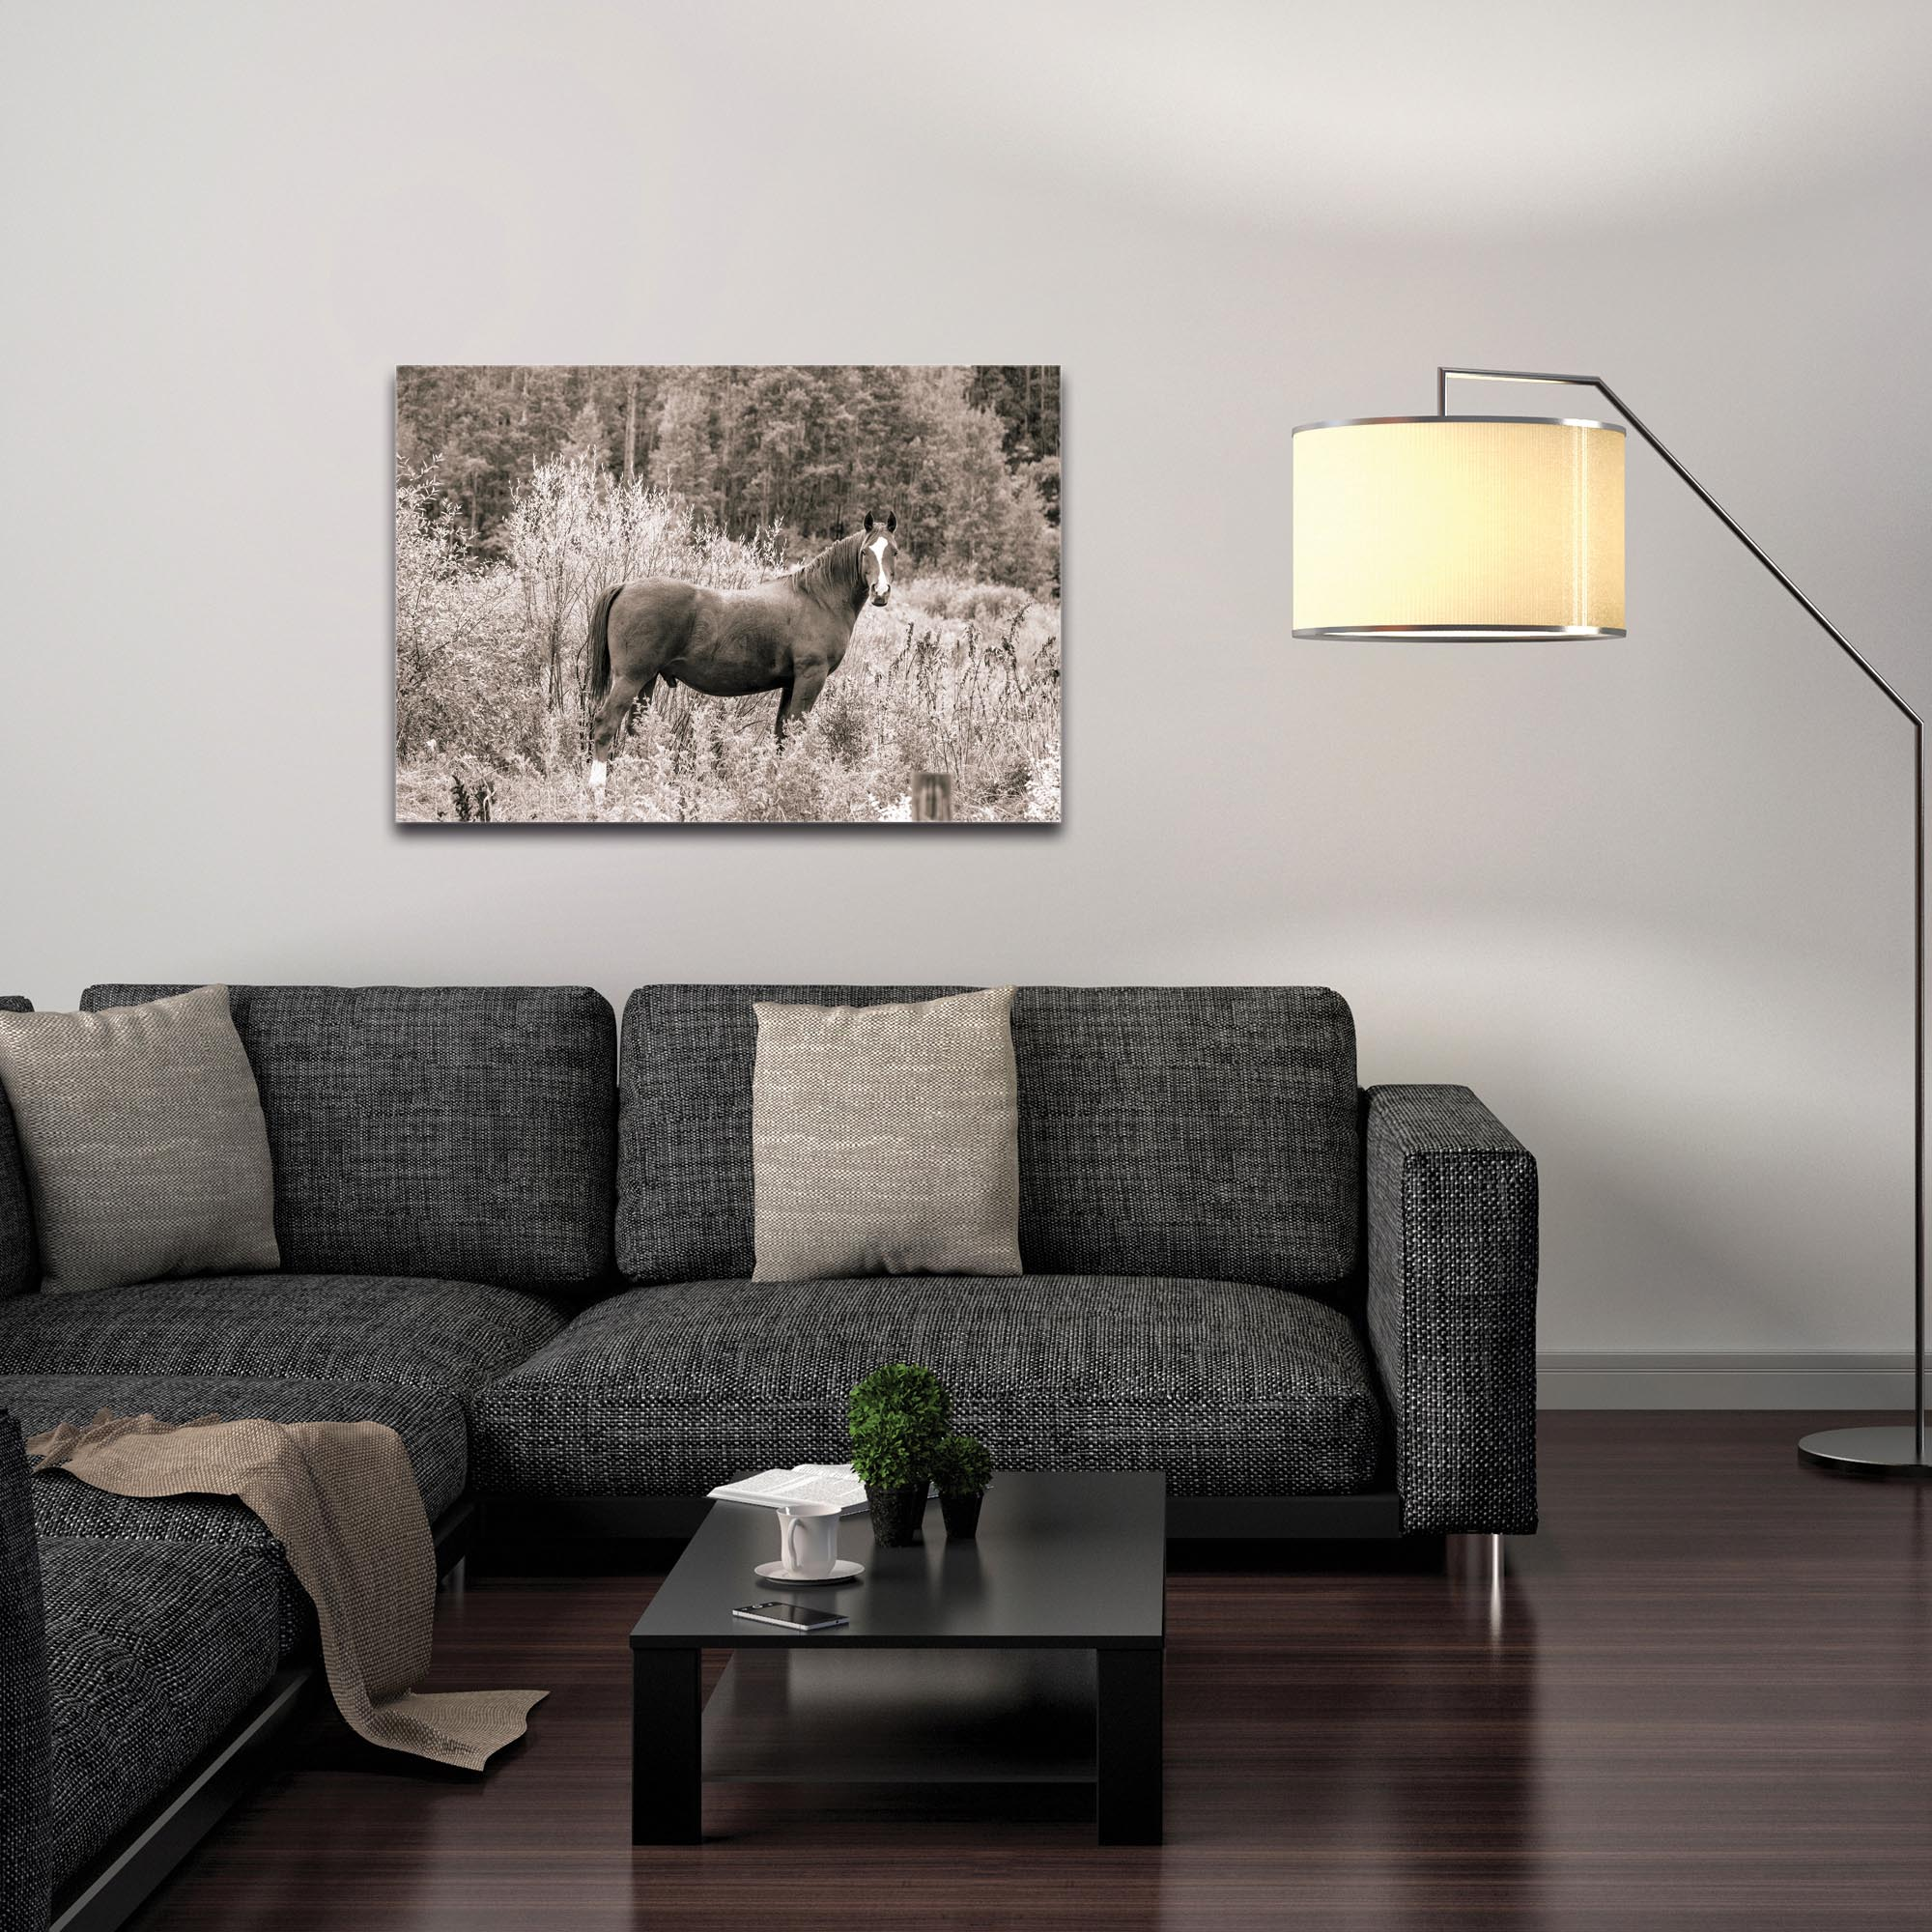 Western Wall Art 'Equine Forest' - Horses Decor on Metal or Plexiglass - Image 3